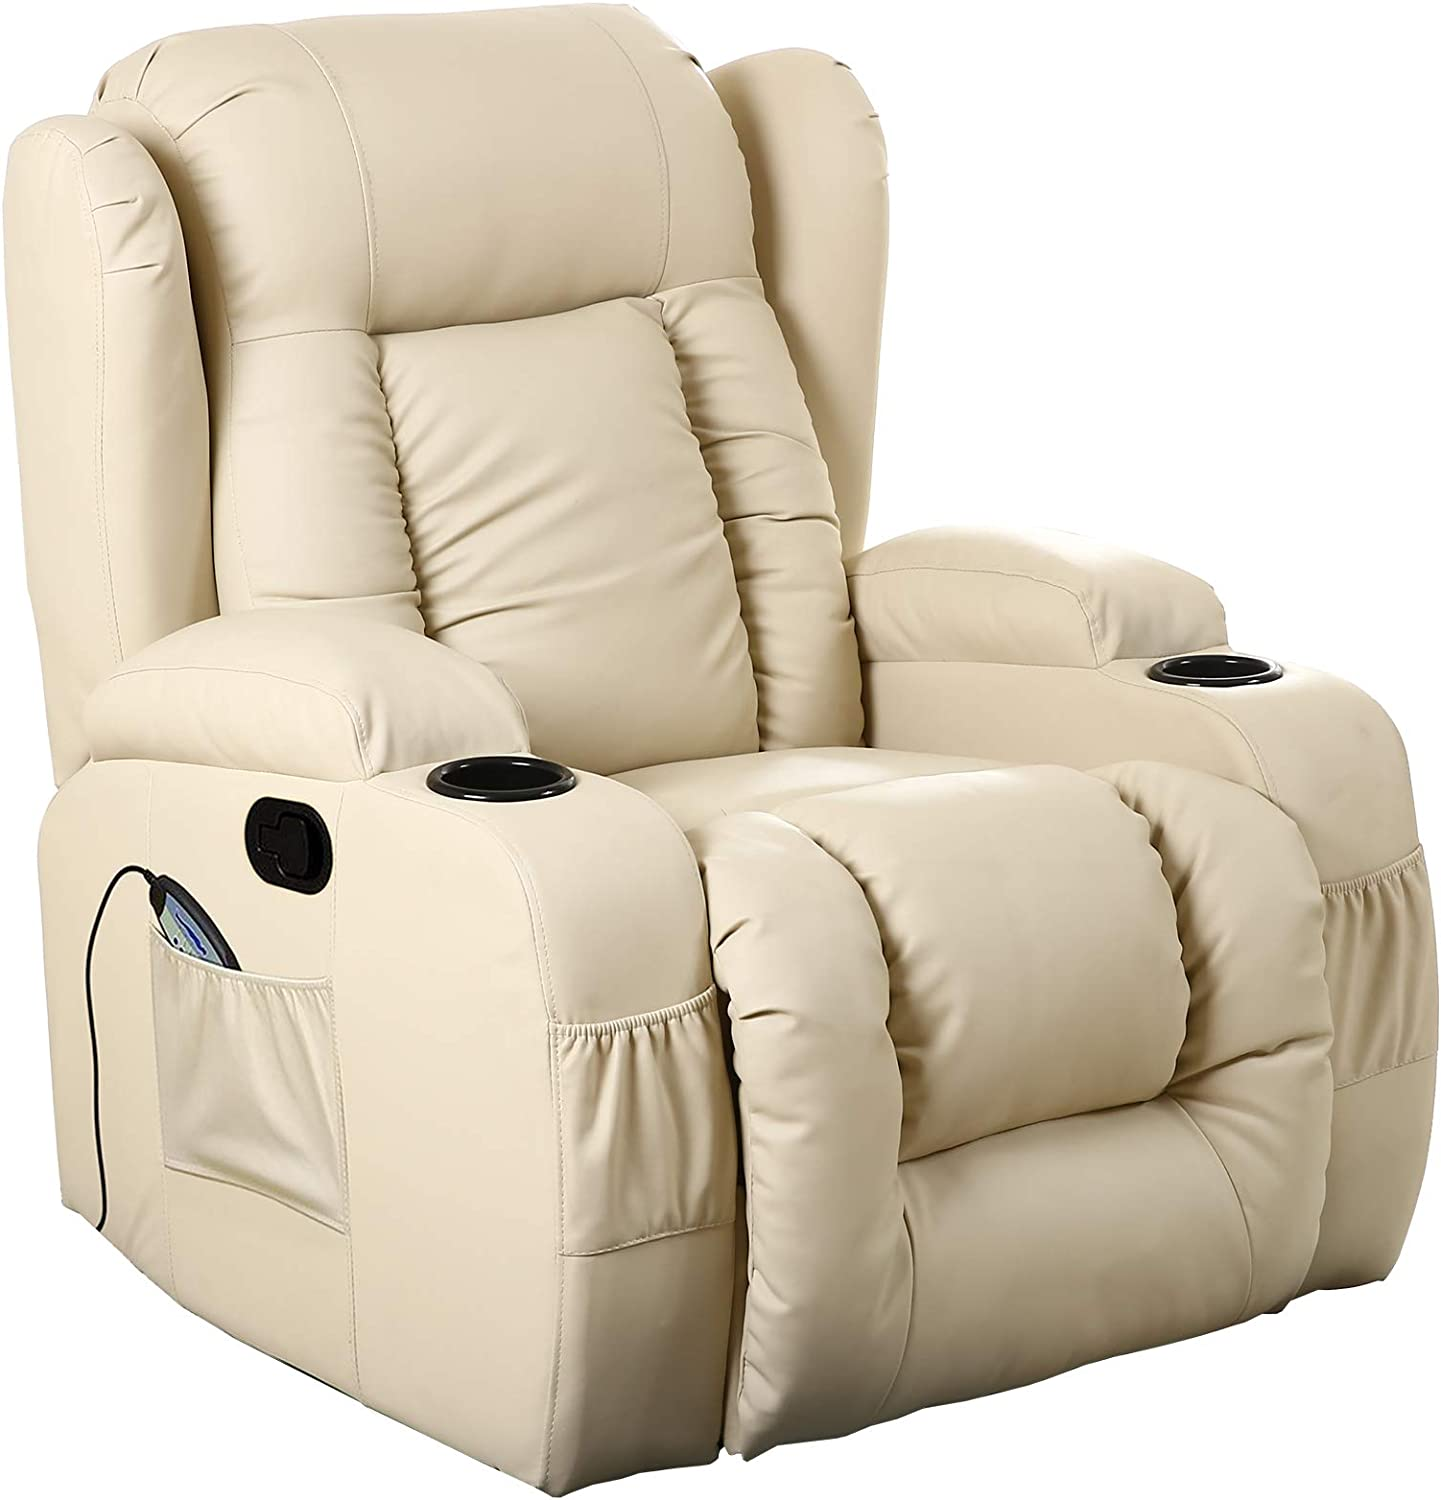 D PRO T 10 IN 1 WINGED LEATHER RECLINER CHAIR ROCKING MASSAGE SWIVEL HEATED GAMING ARMCHAIR (Cream)